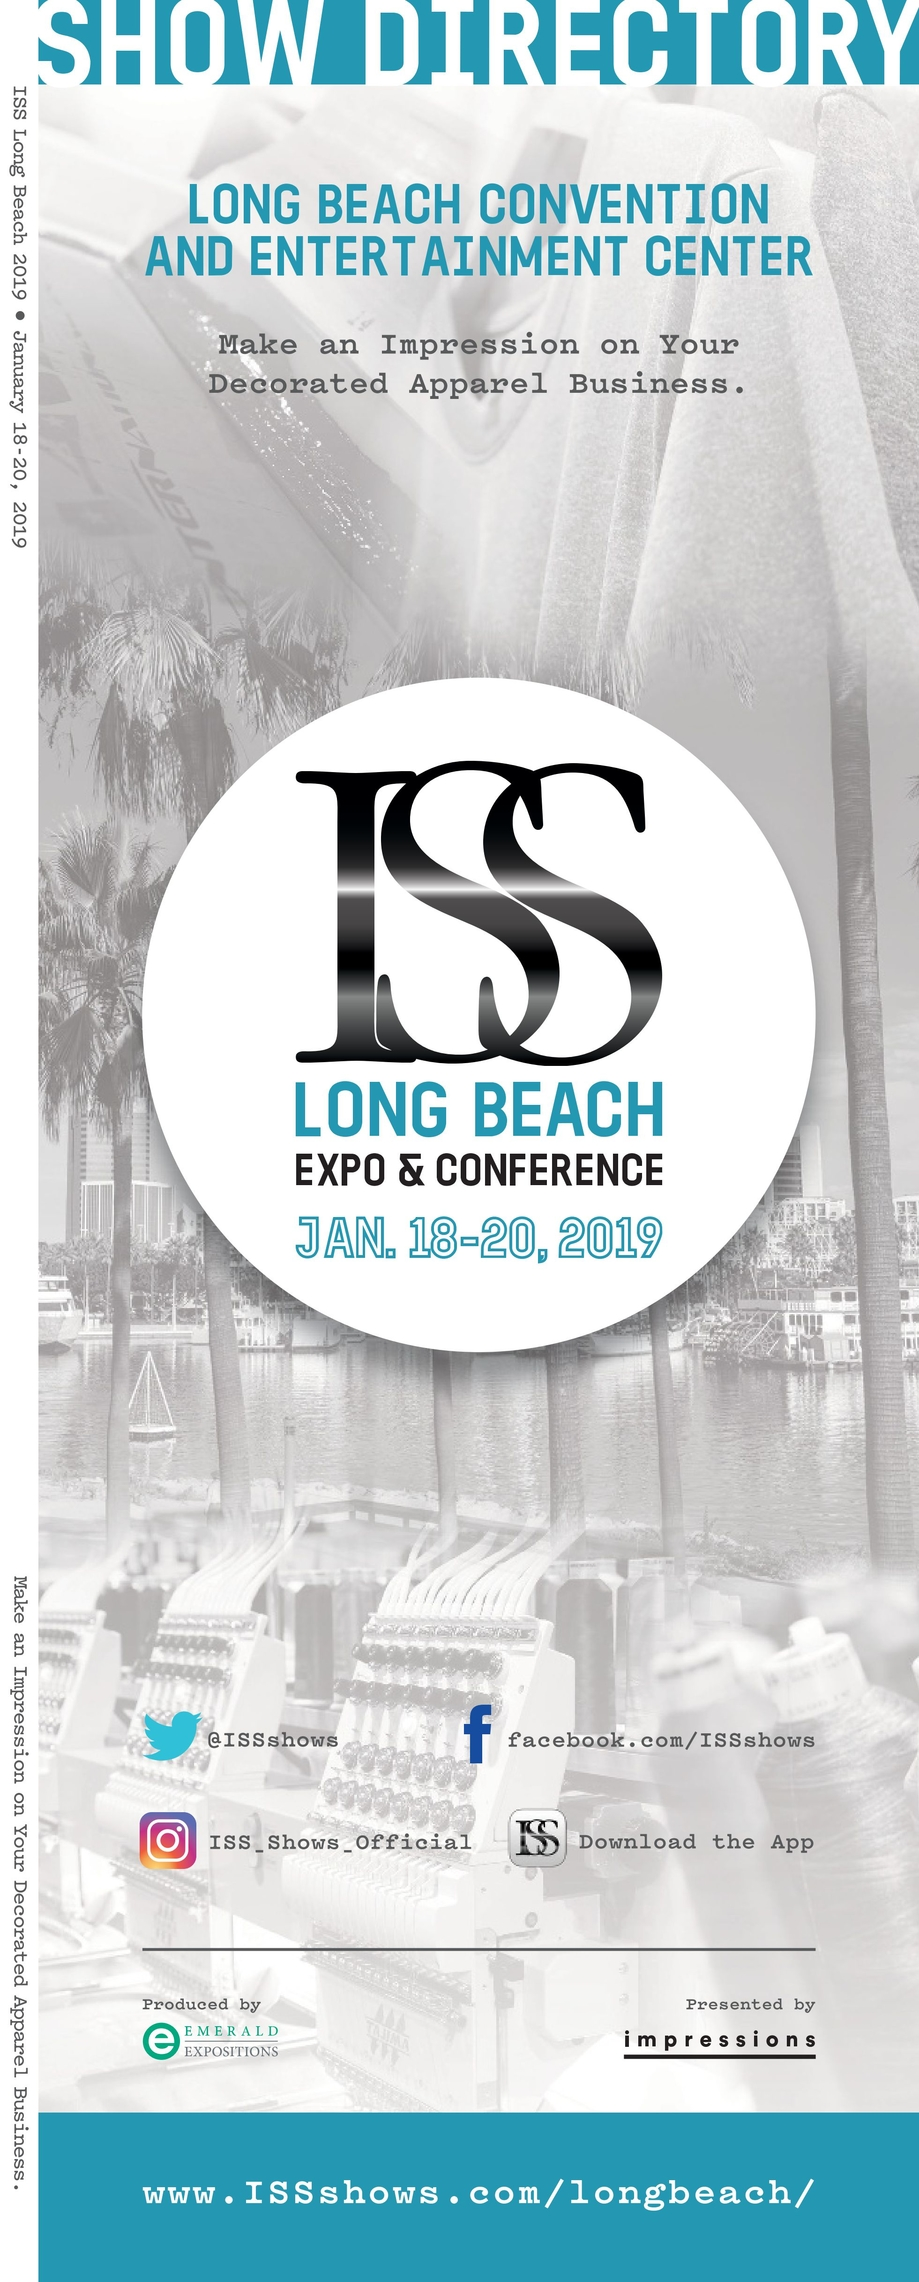 ISS Long Beach 2019 Show Directory